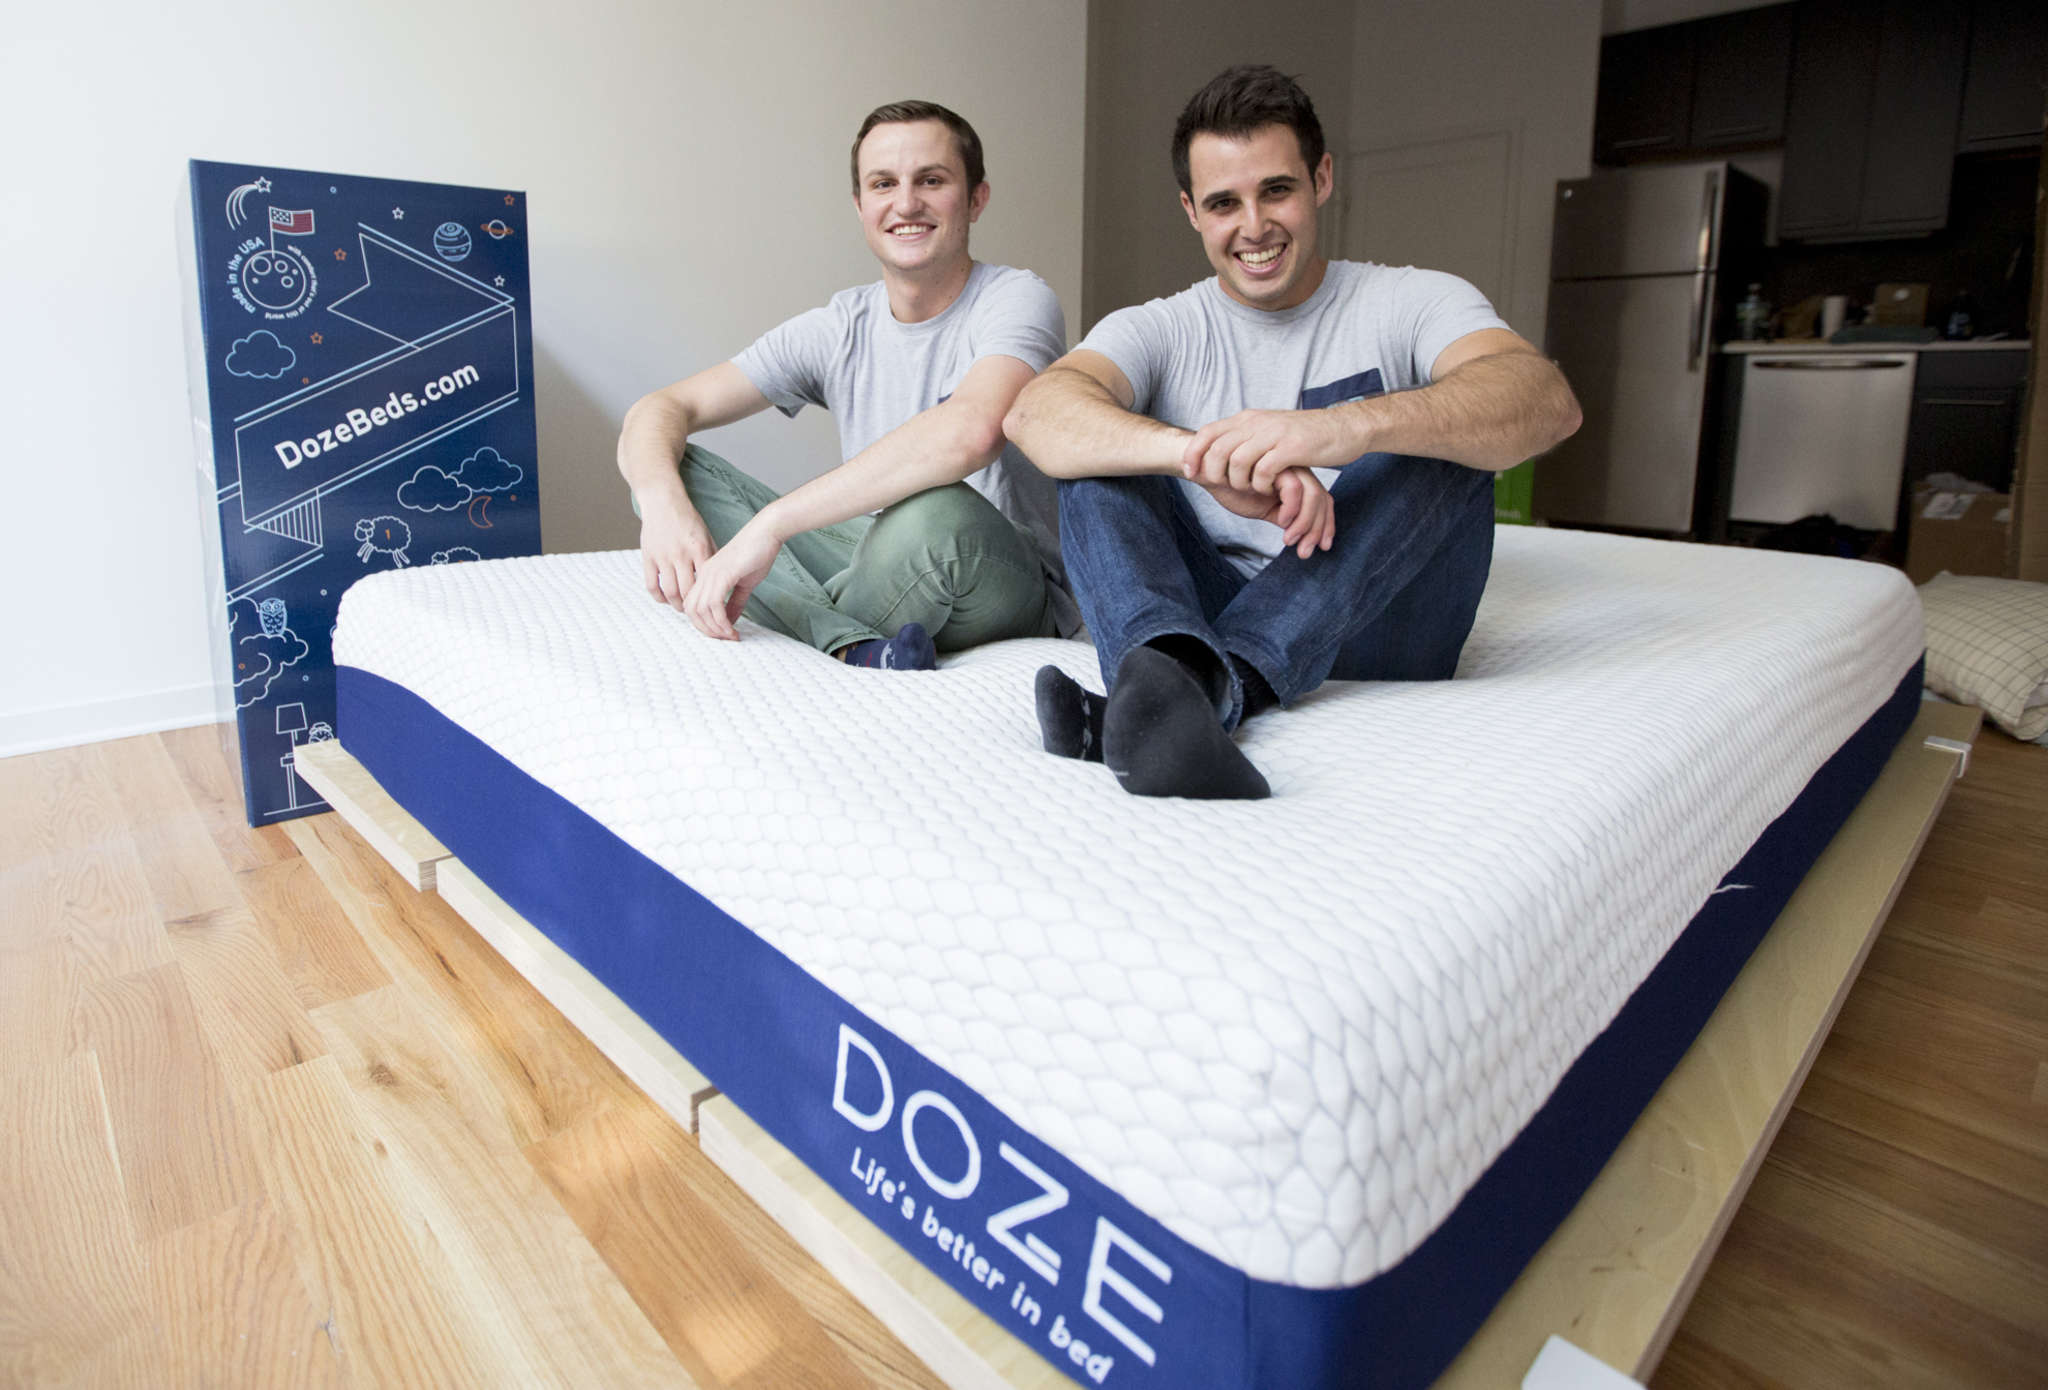 Online offerings are the specialty of Brendan Rice (left) and Russell Suskind.